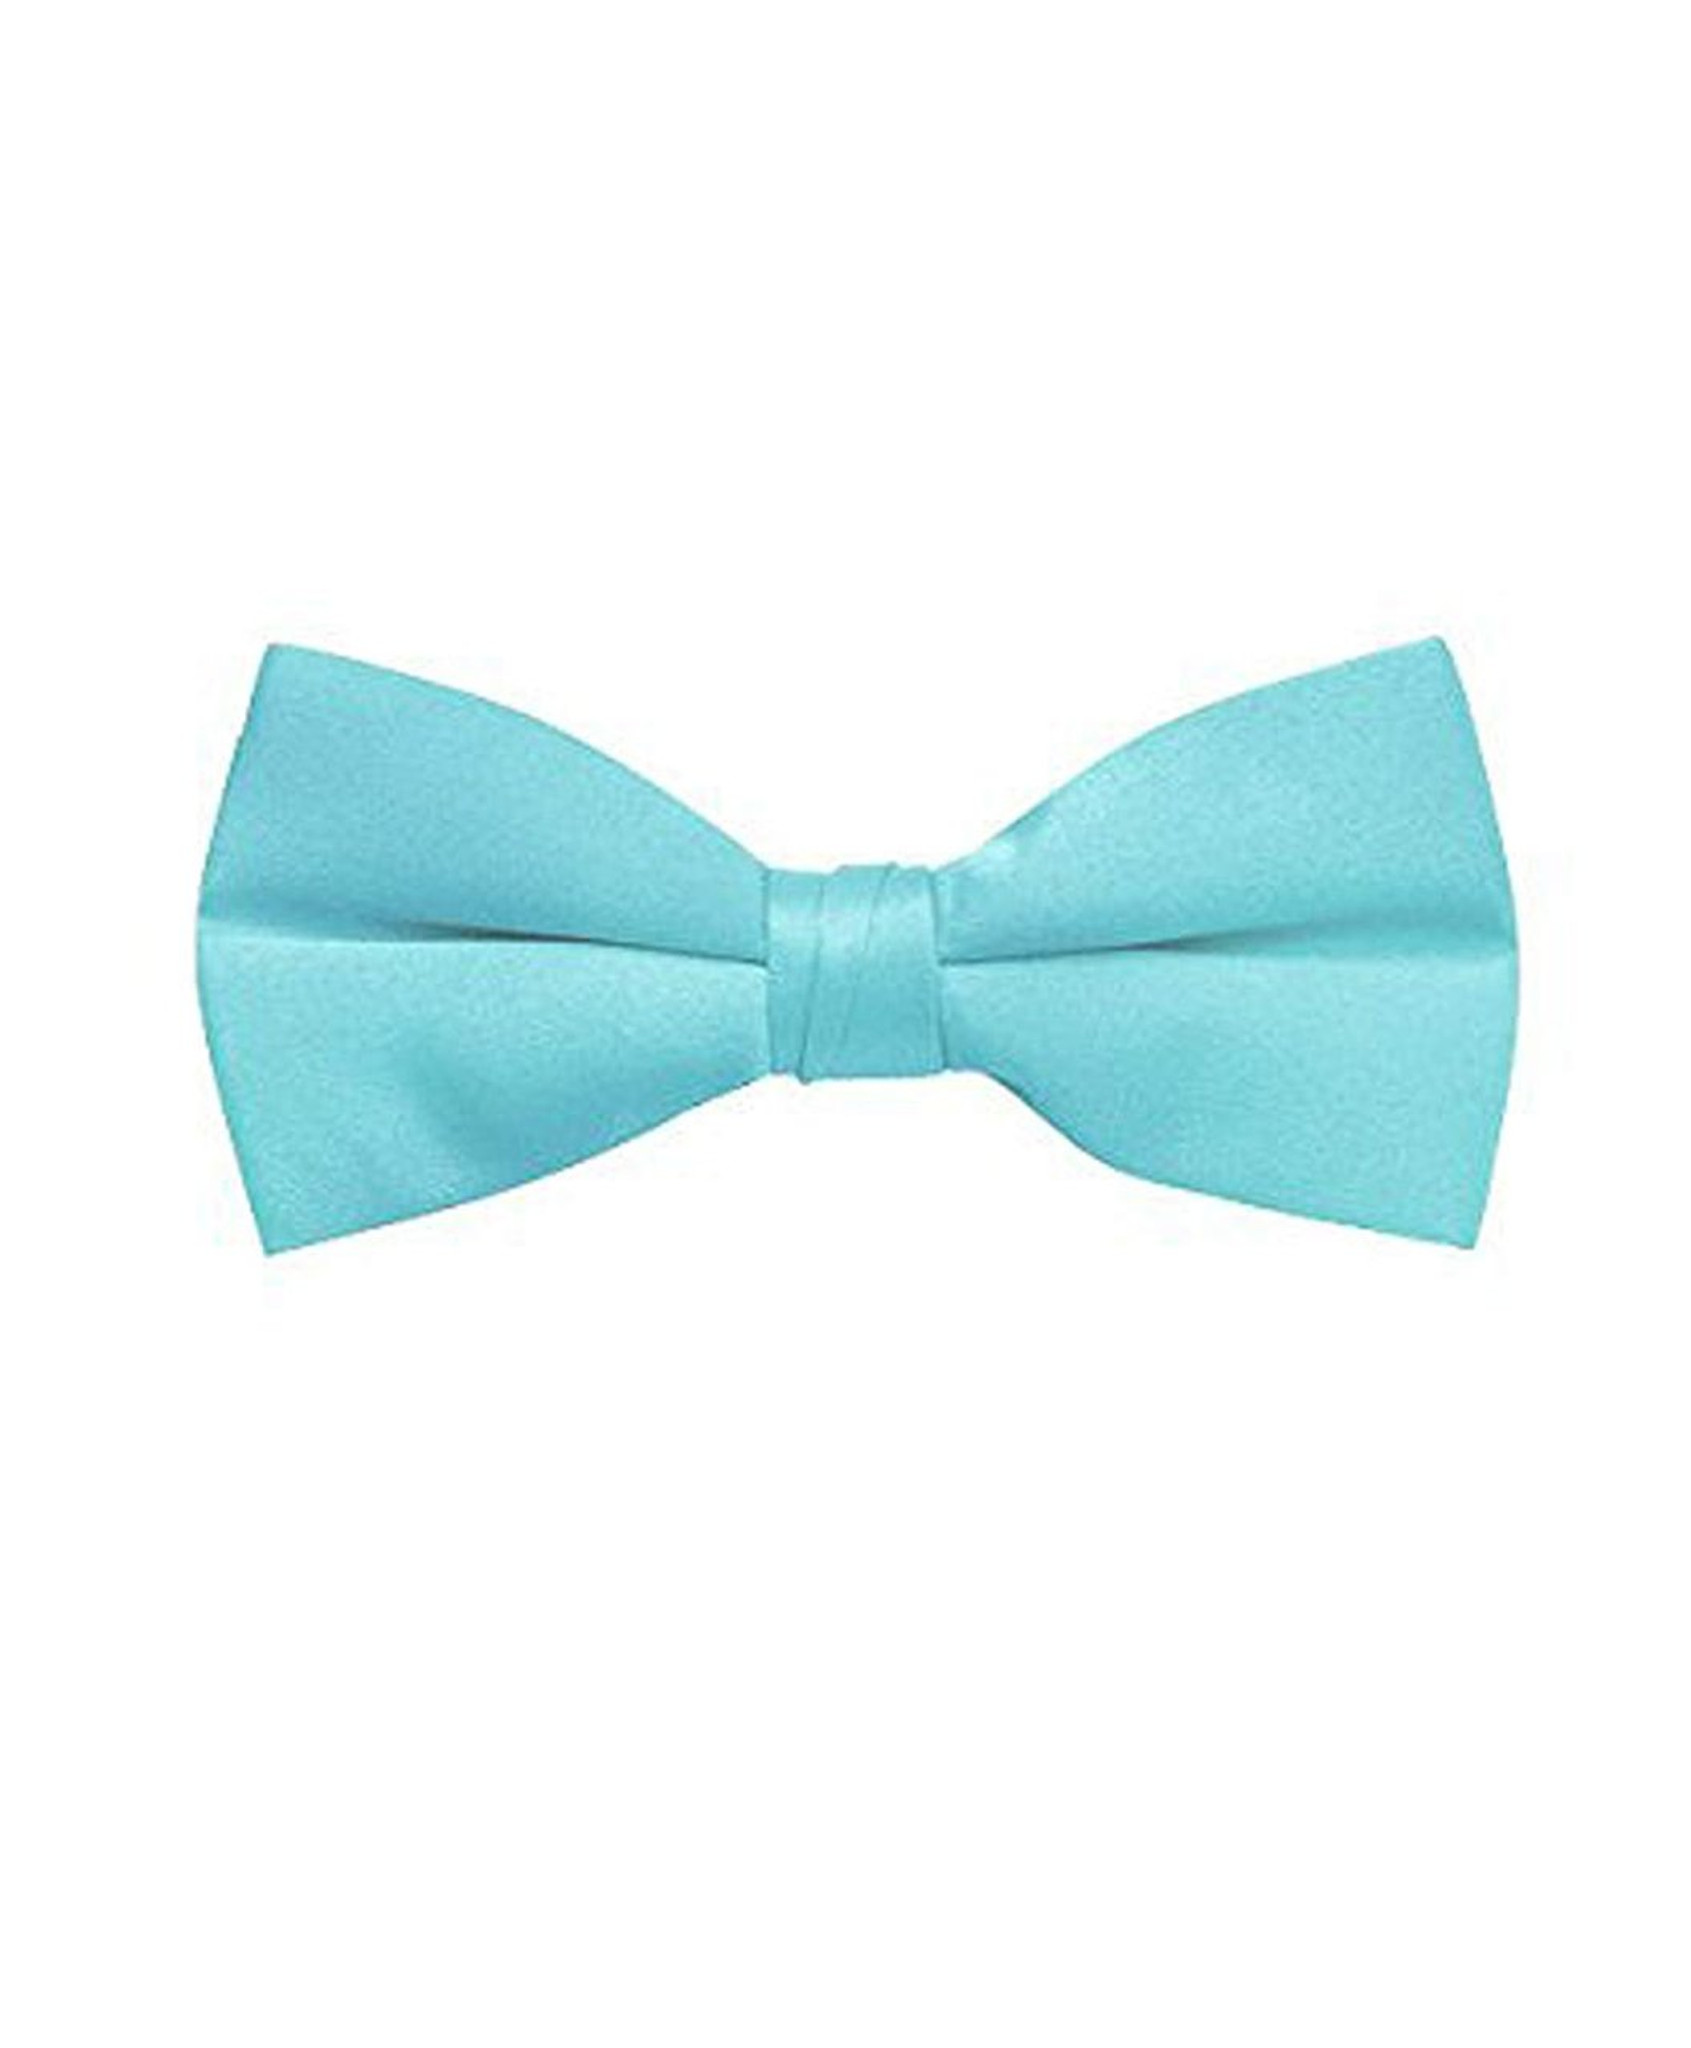 New men/'s pre-tied bow tie set solid 100/% polyester formal wedding teal blue